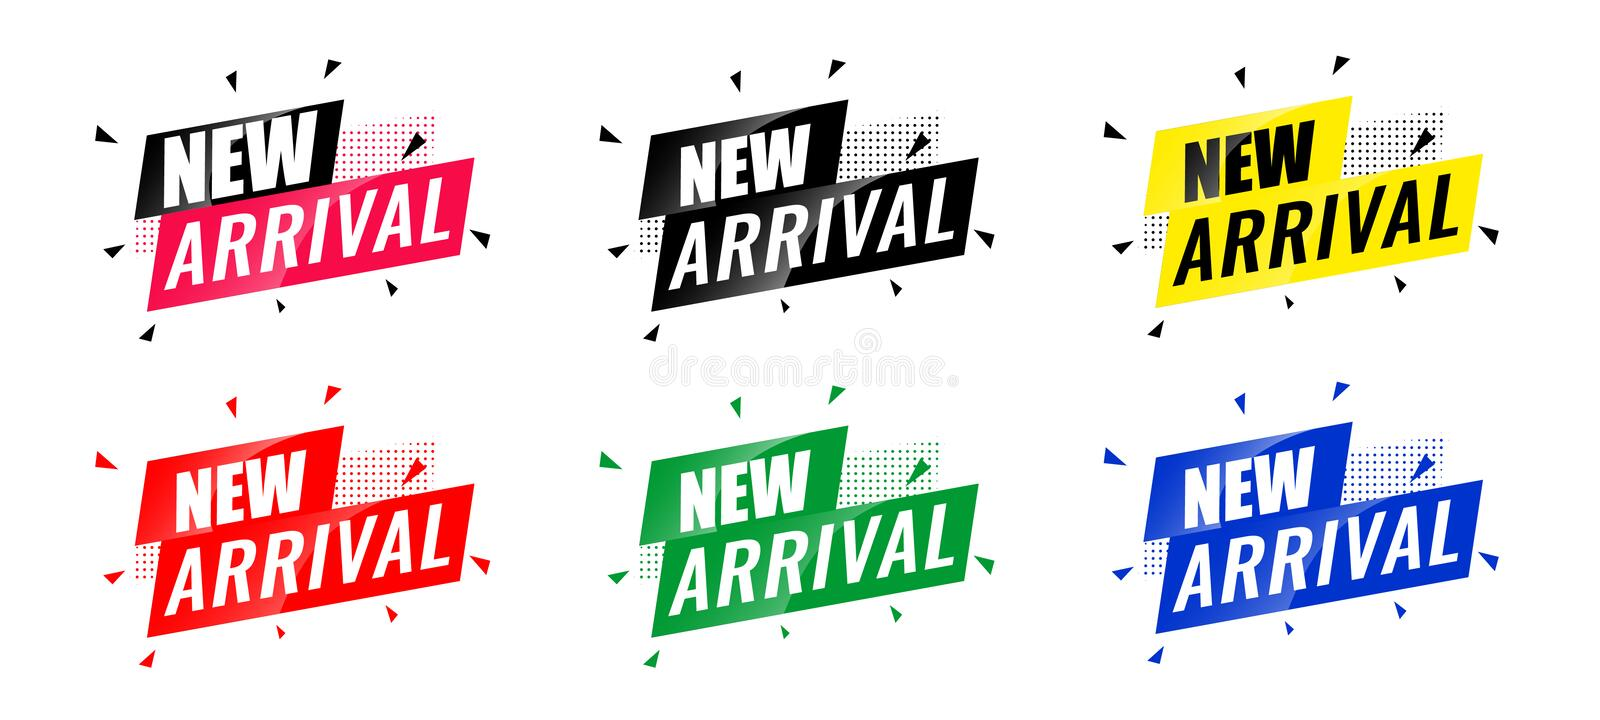 Collection of New Arrivals Text Vector Eps Stock Vector ...